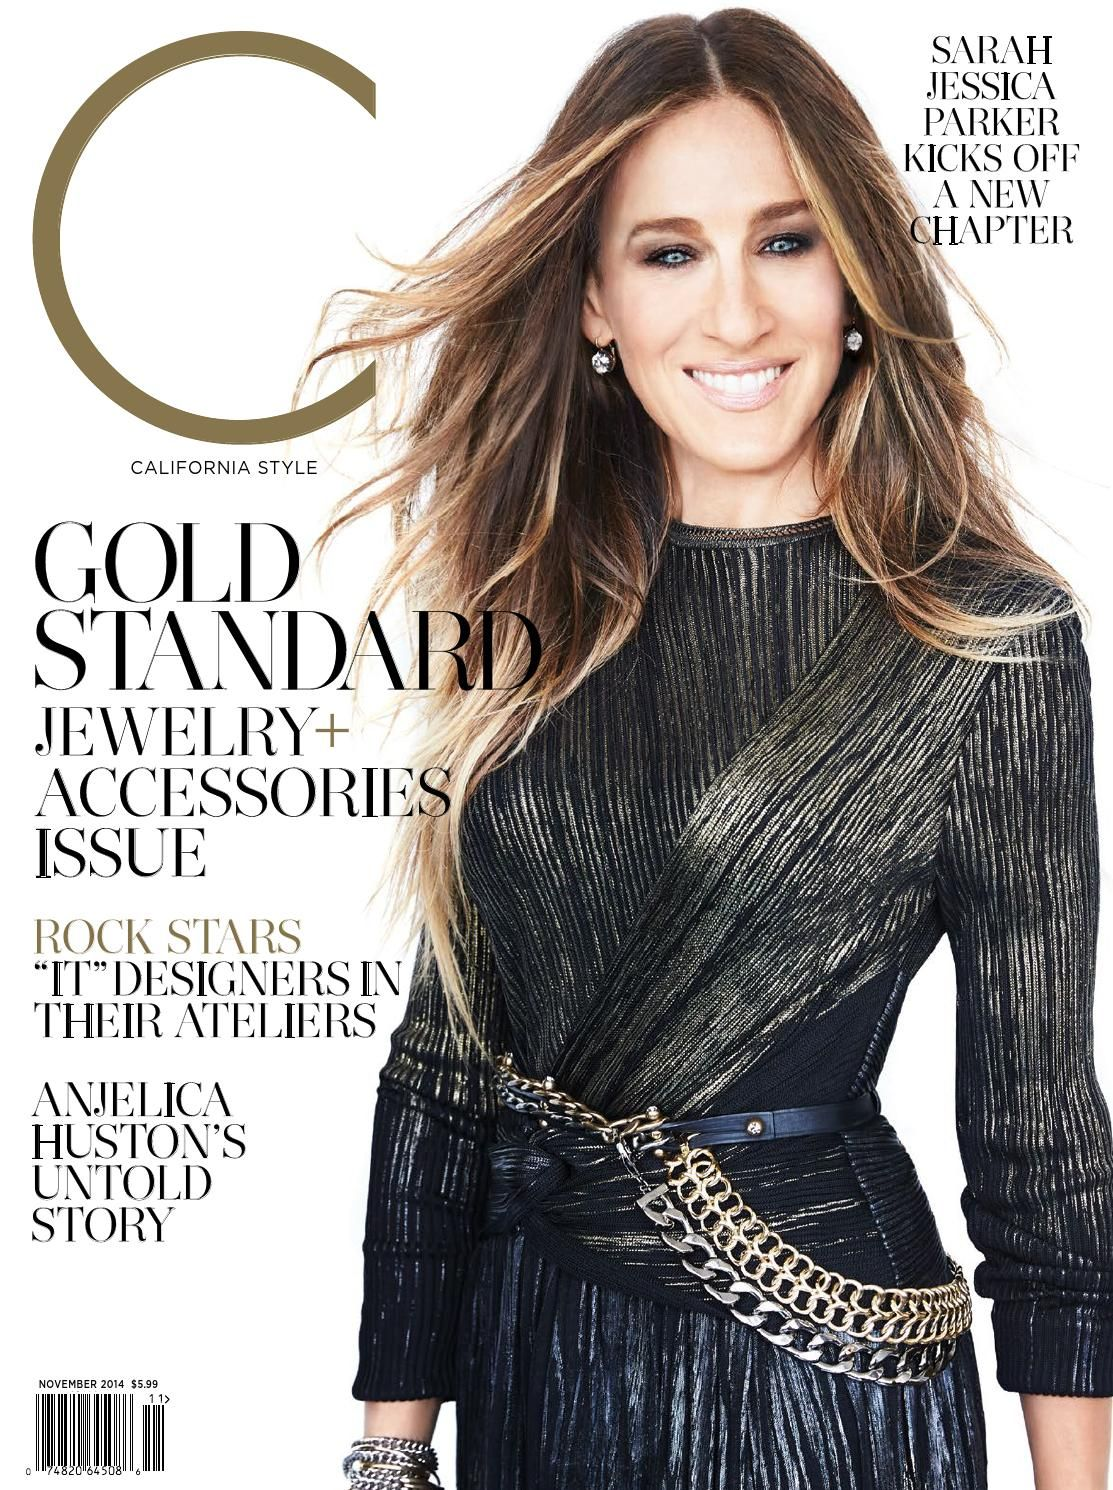 Pin by Fashion Blog on Magazine Cover in   Pinterest  Sarah